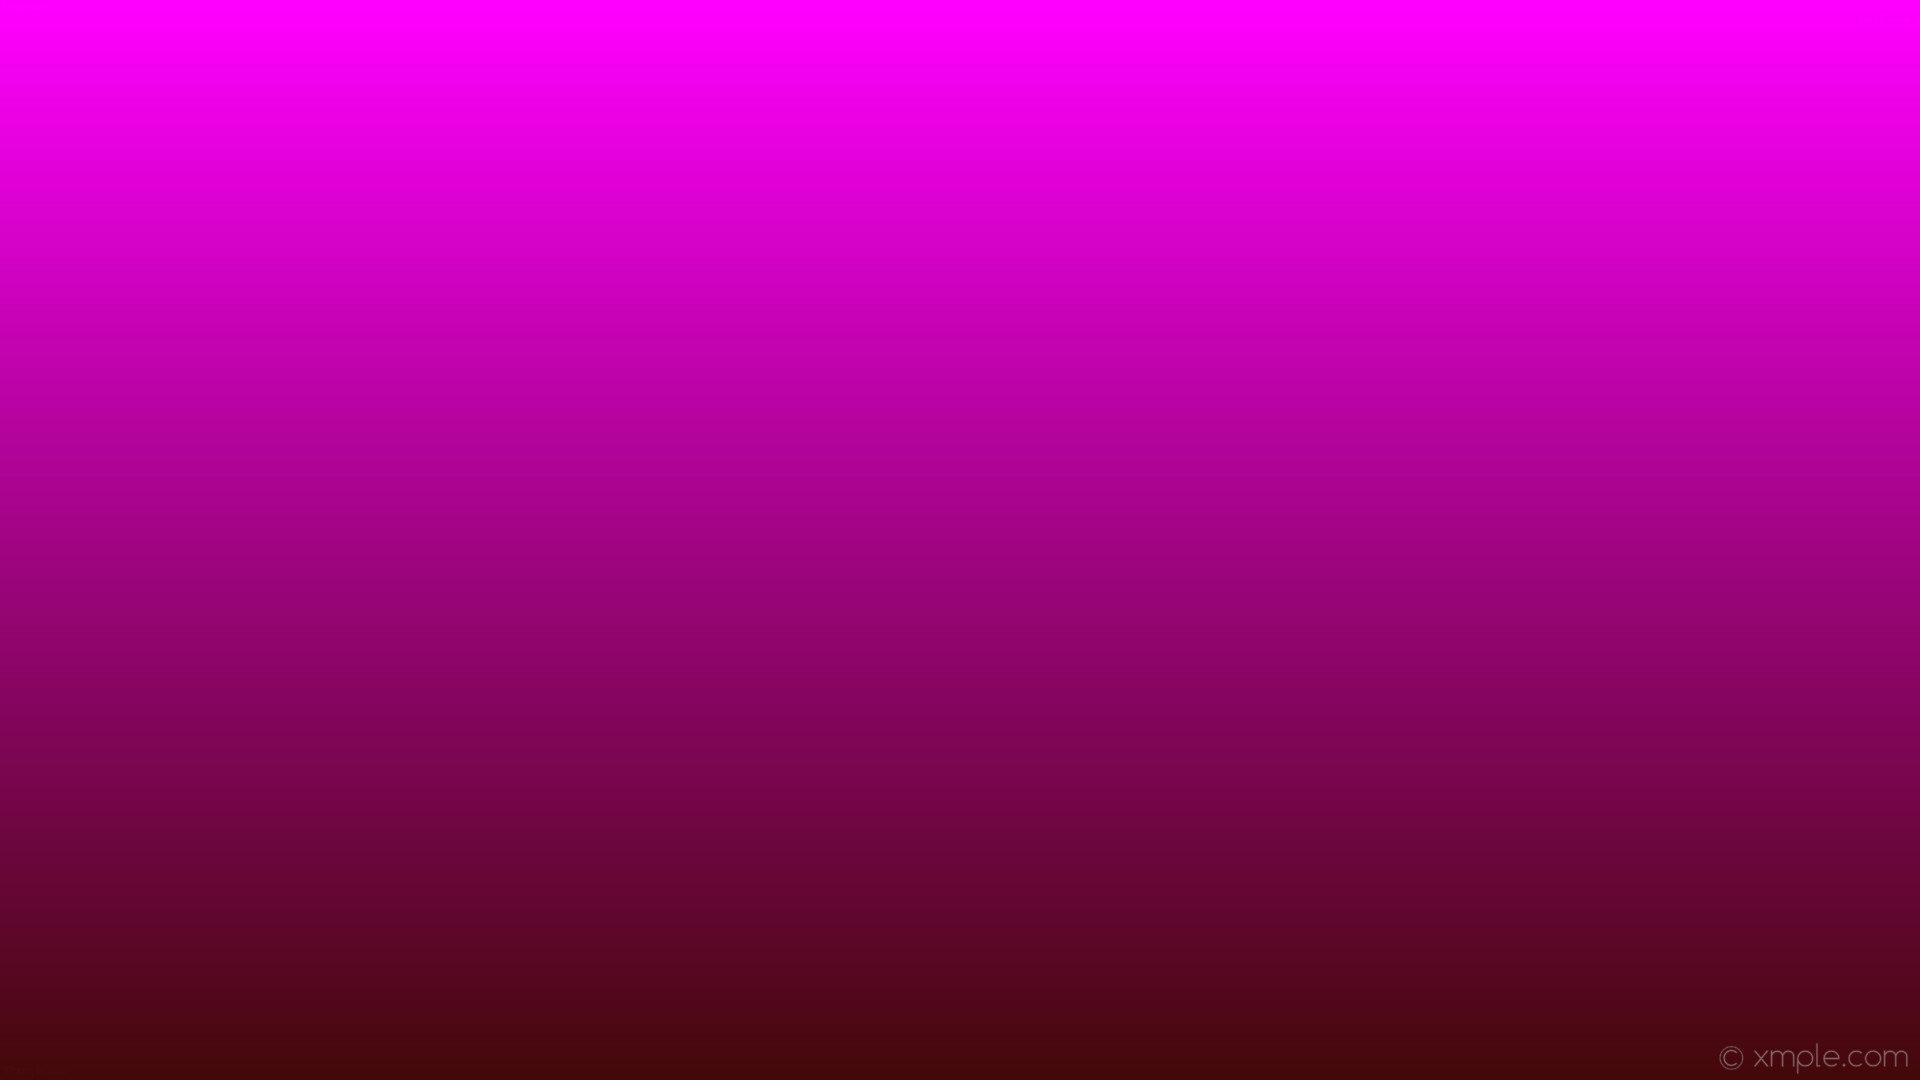 purple and red wallpaper 79 images